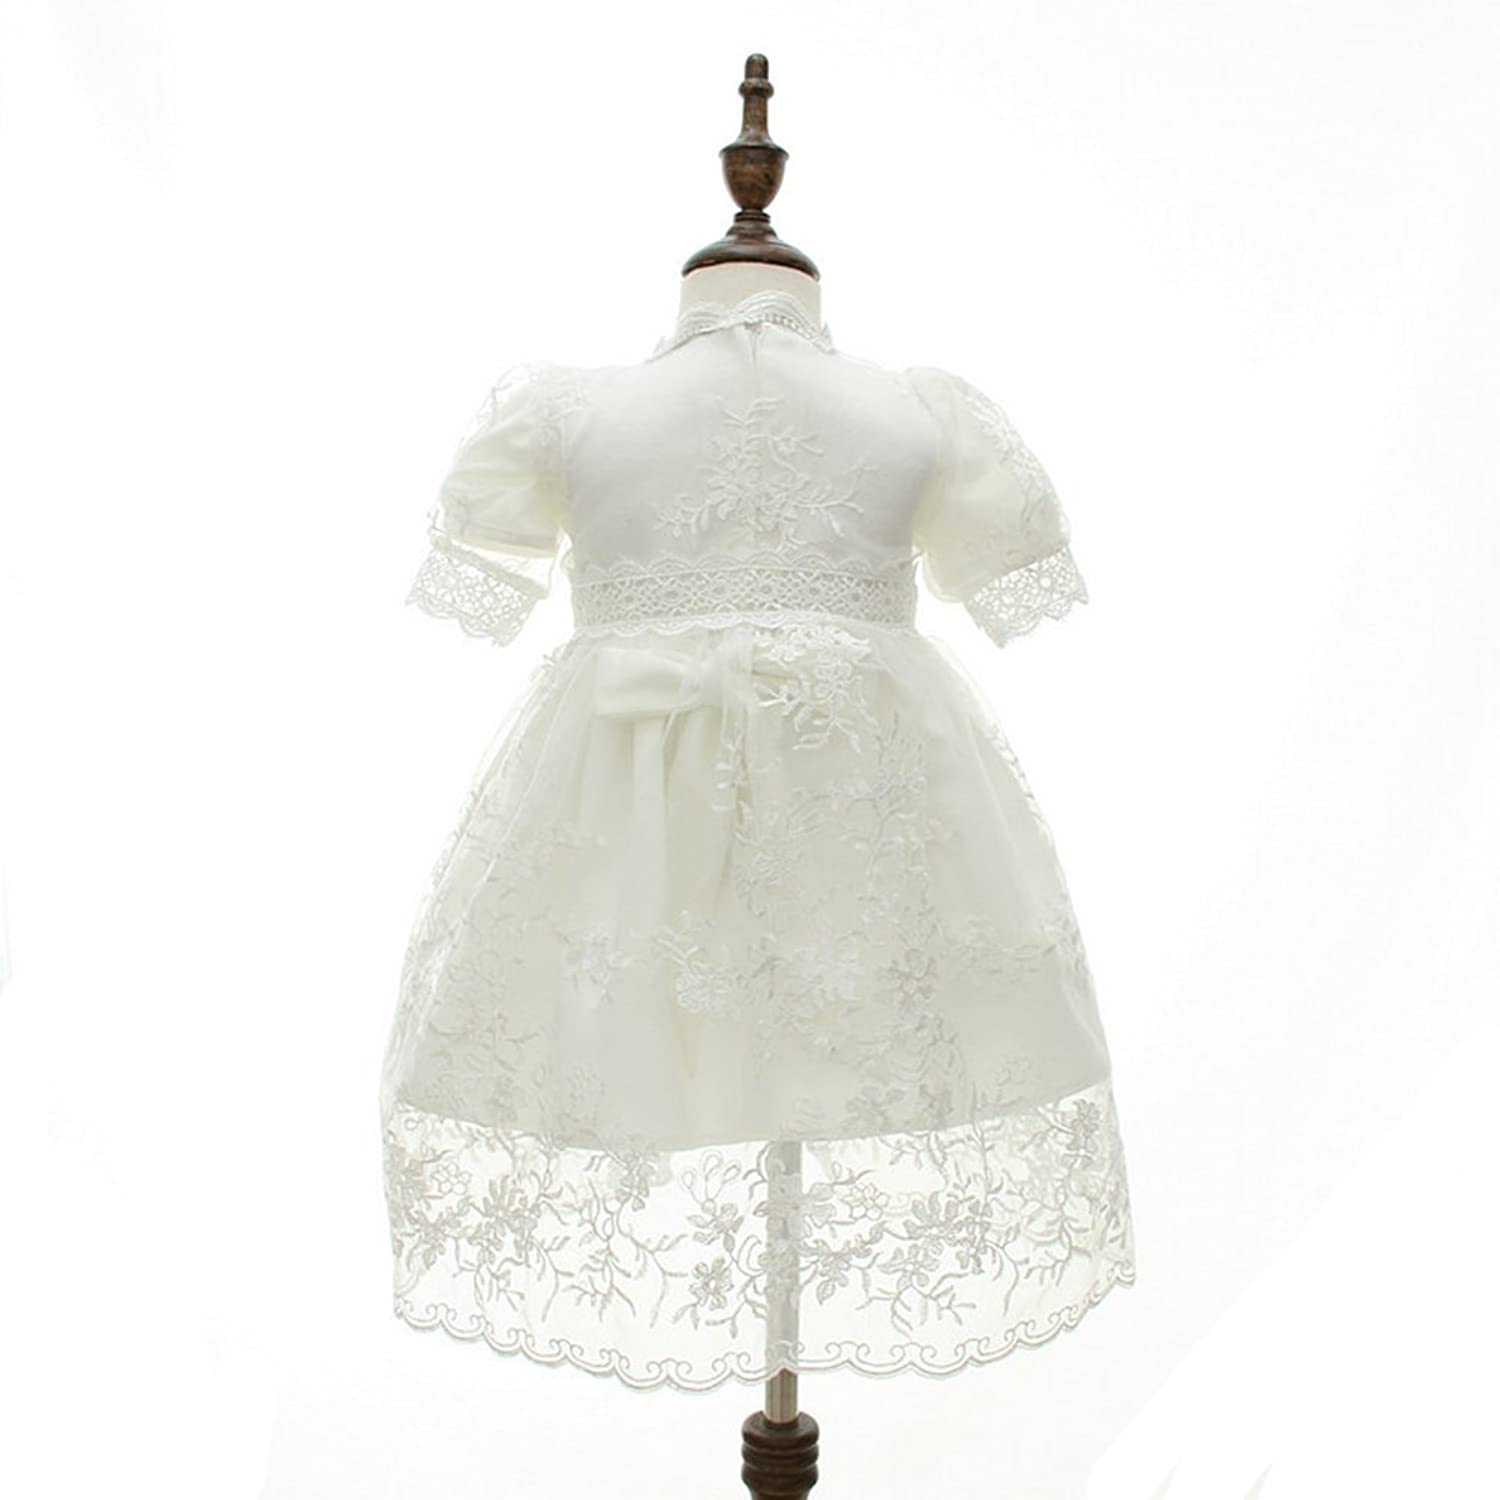 Baby gowns from wedding dresses